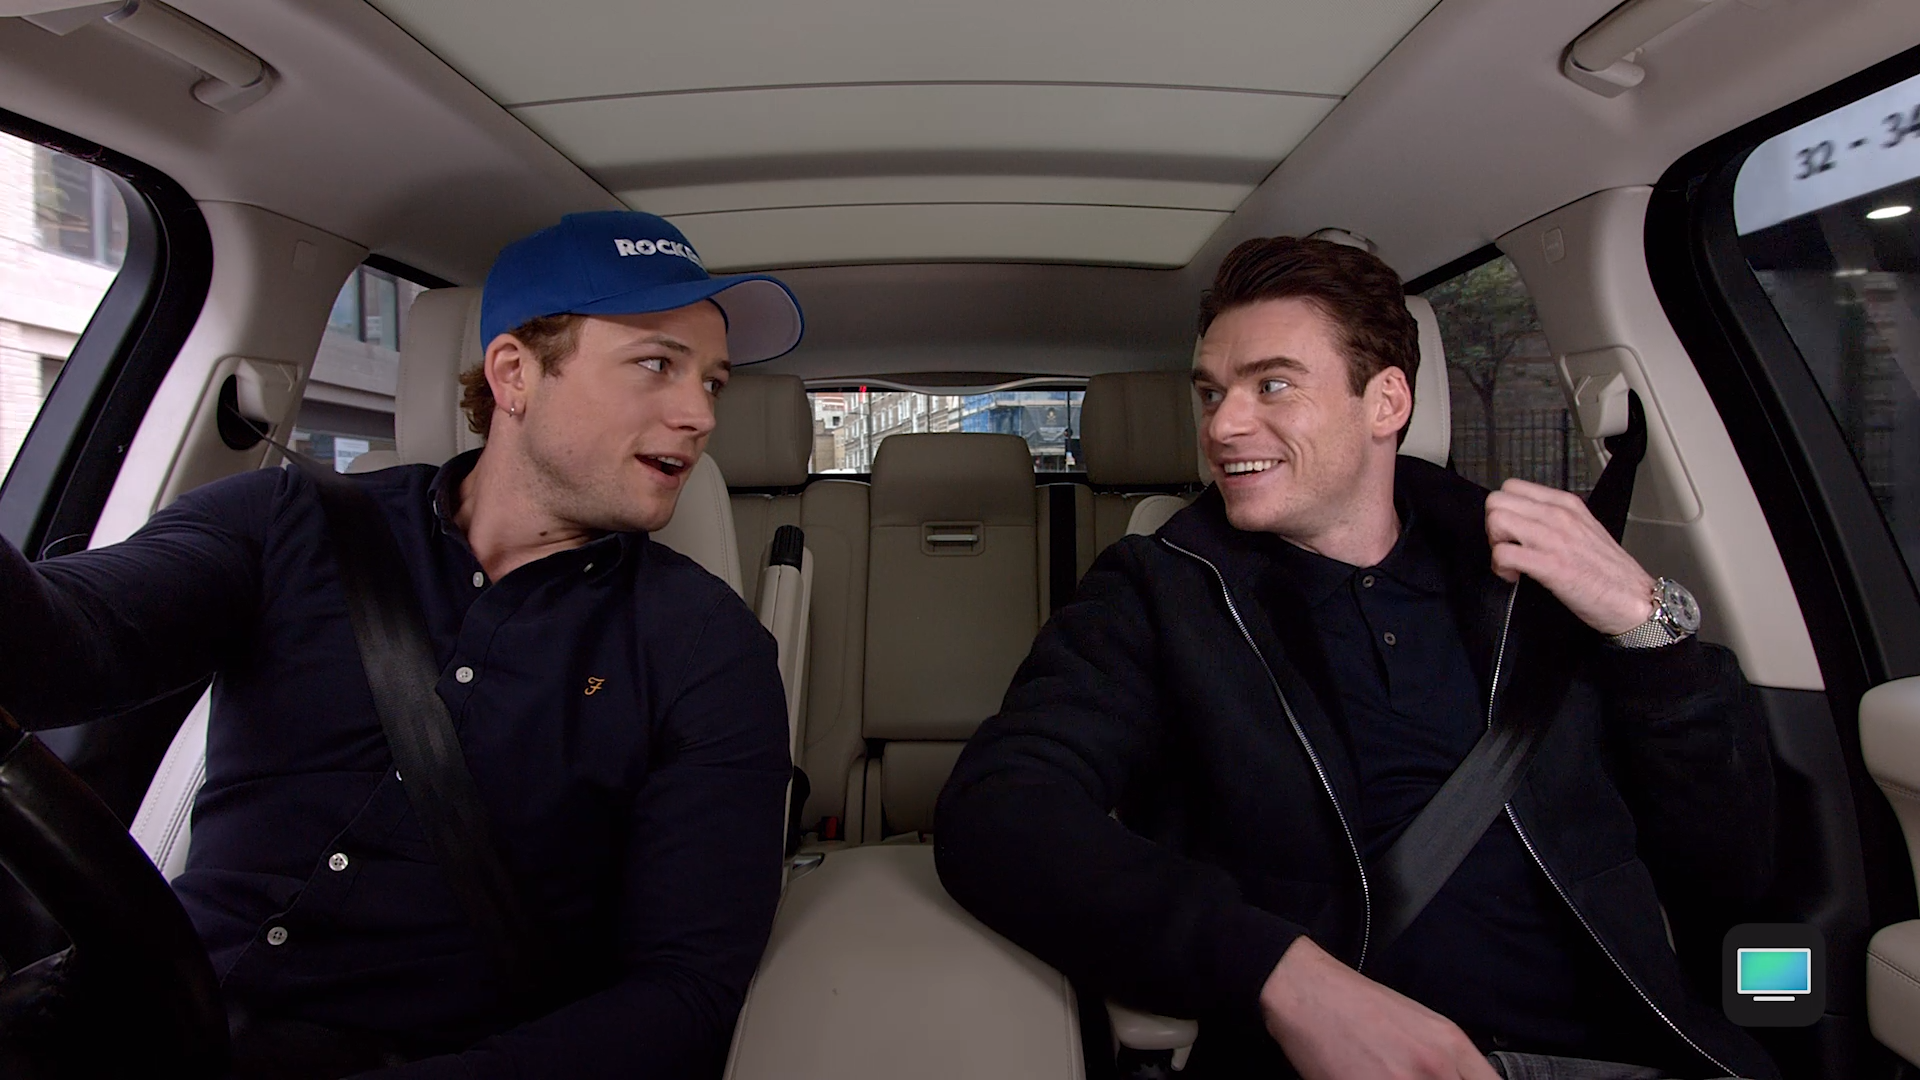 Taron Egerton And Richard Madden Hit The Road In London For A